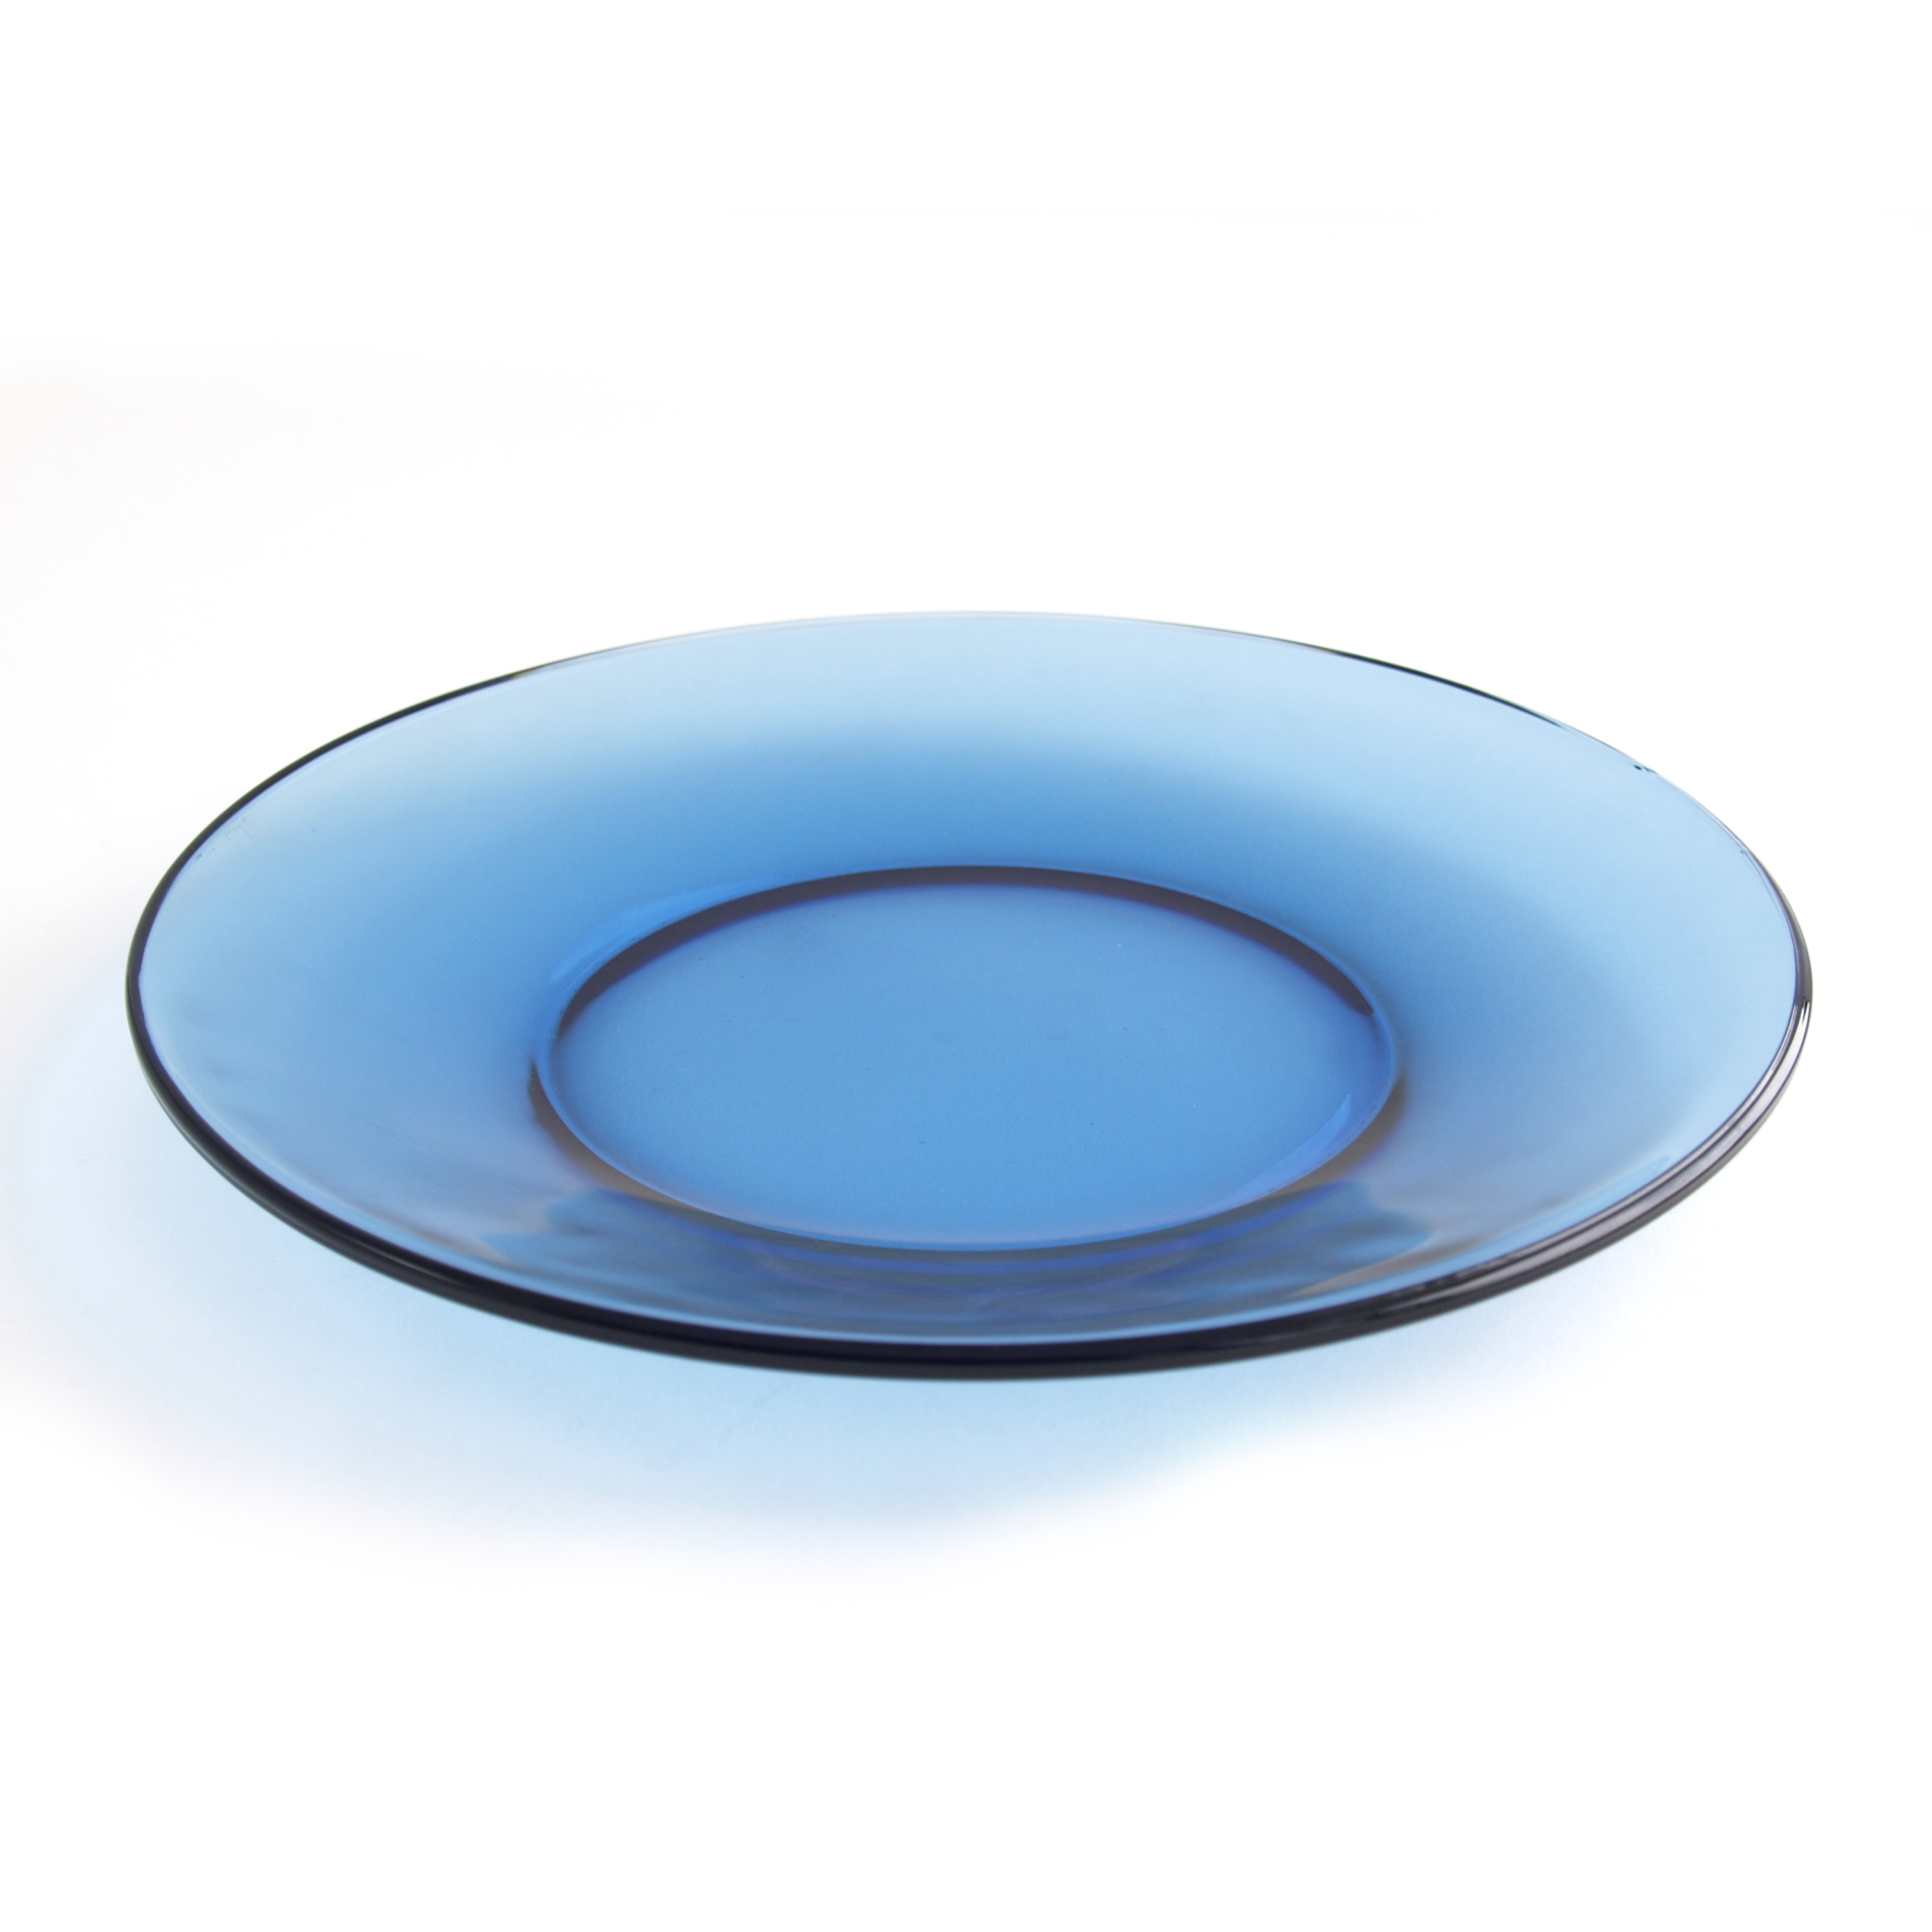 Anchor Hocking Presence Denim Blue Glass 8 Inch Plate, Set of 6